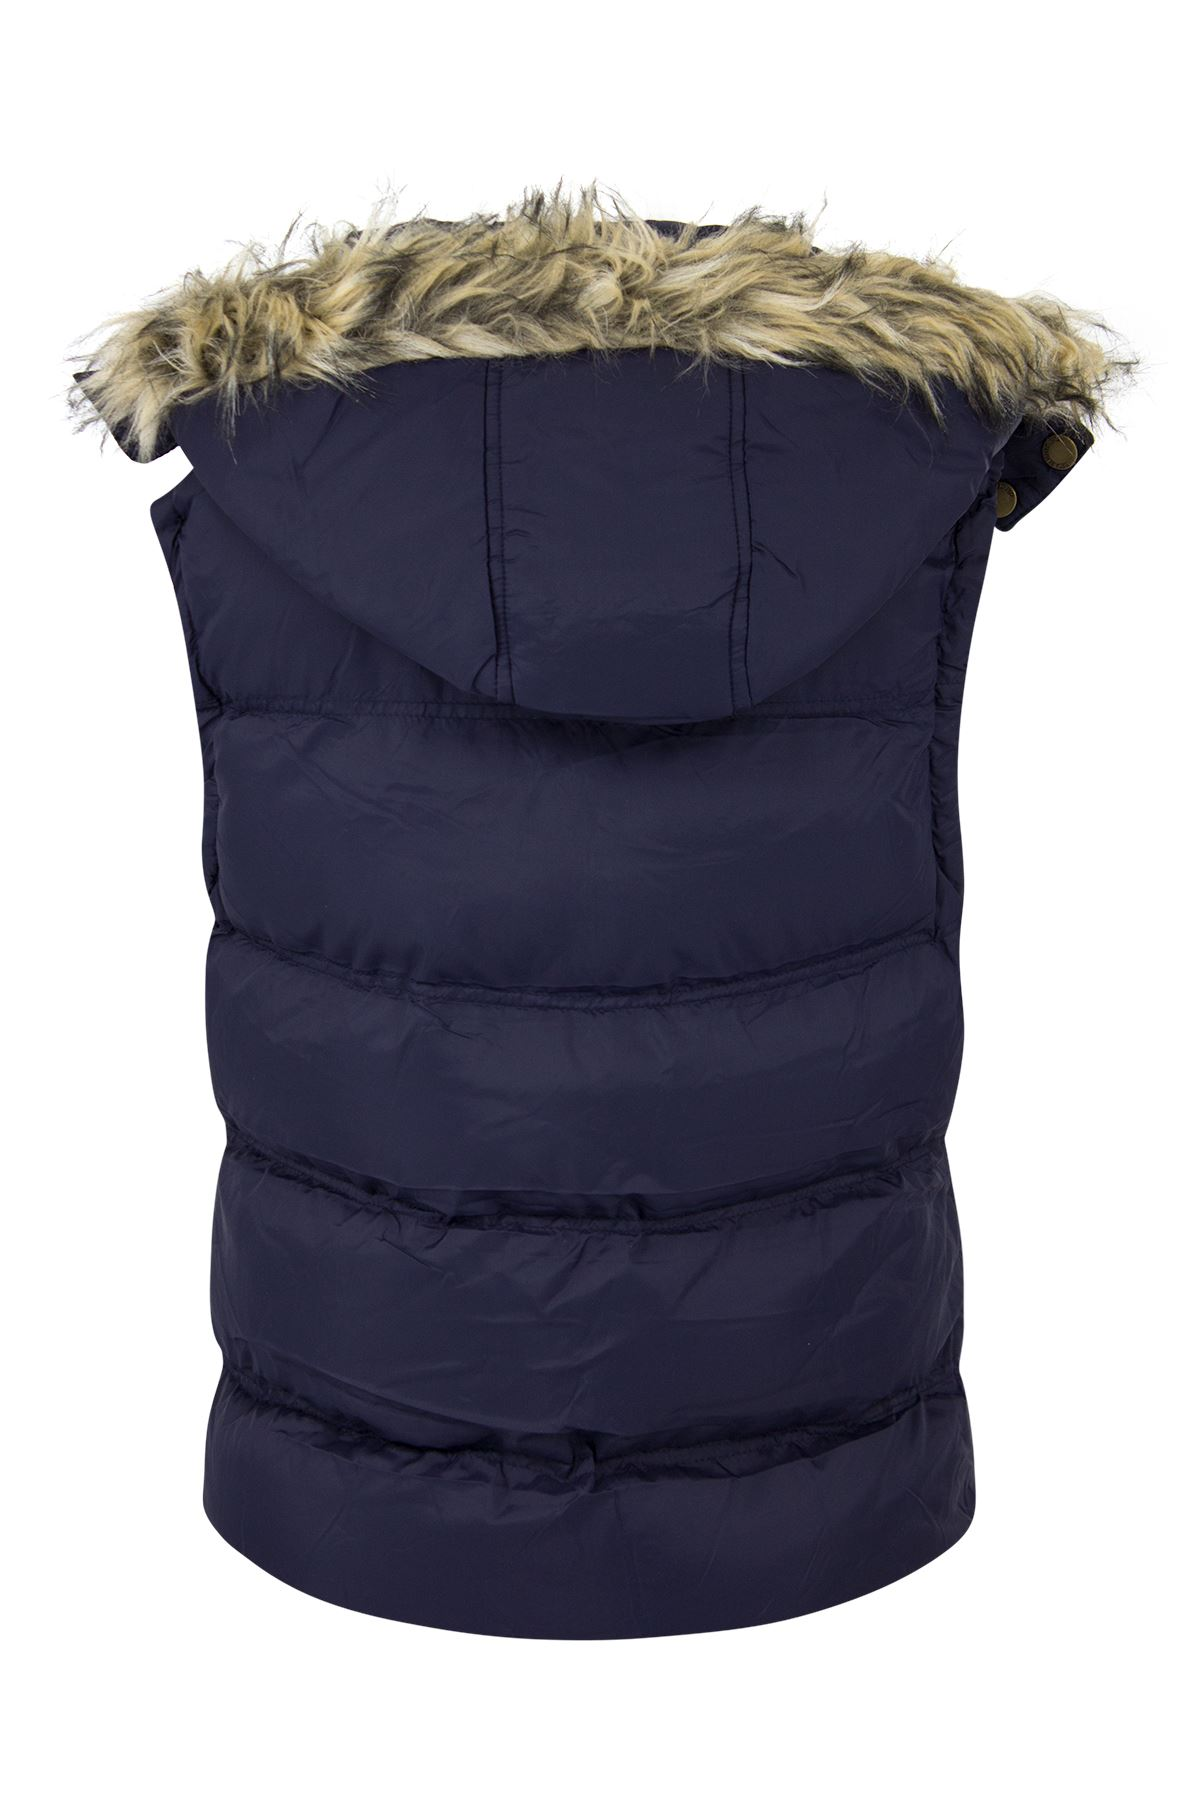 New-Womens-Padded-Sleeveless-Gilet-Faux-Fur-Hooded-Puffer-Body-Warmer-Jacket thumbnail 7